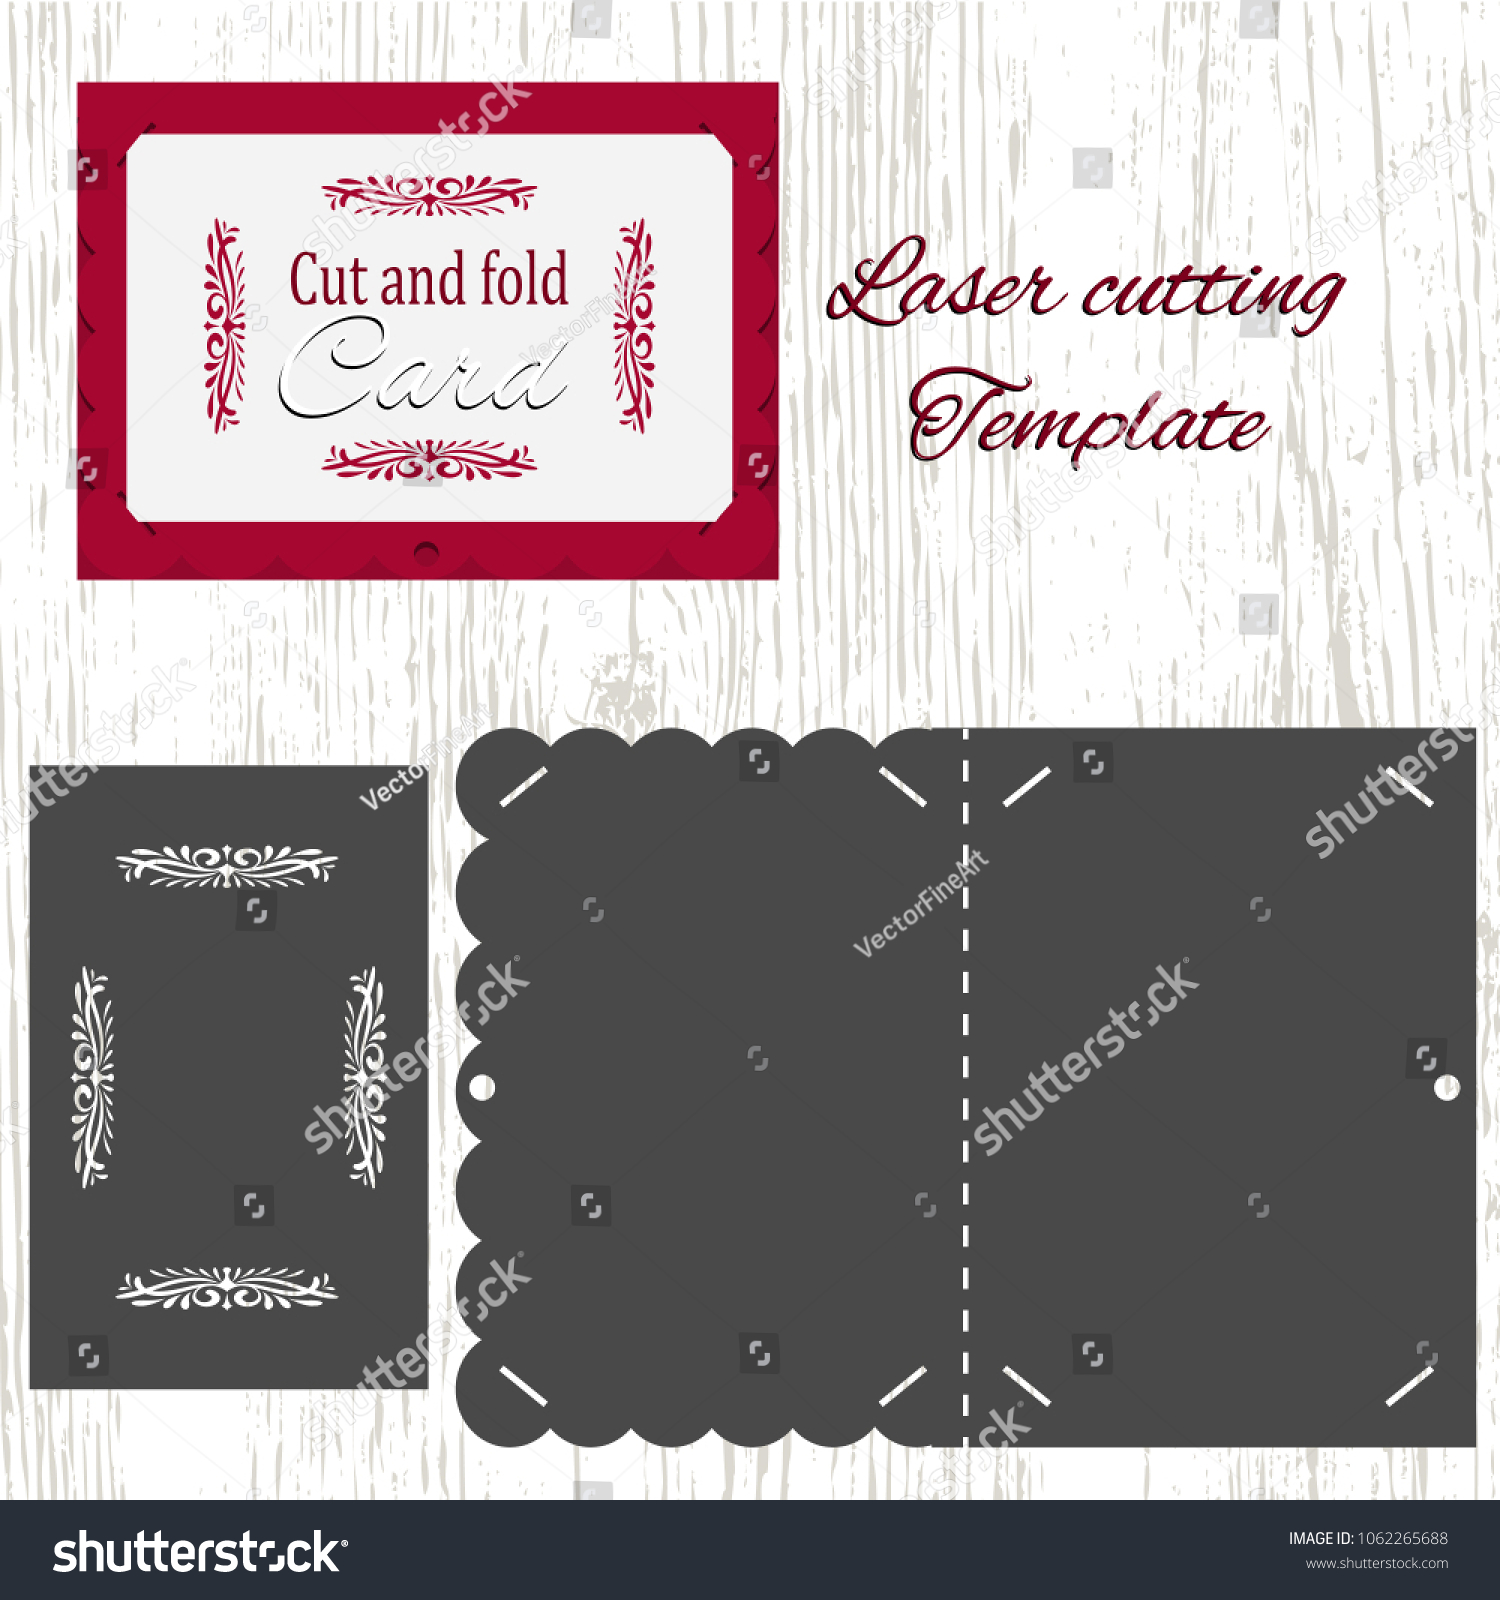 Cut Fold Vector Card Template Suitable Stock Vector 1062265688 ...